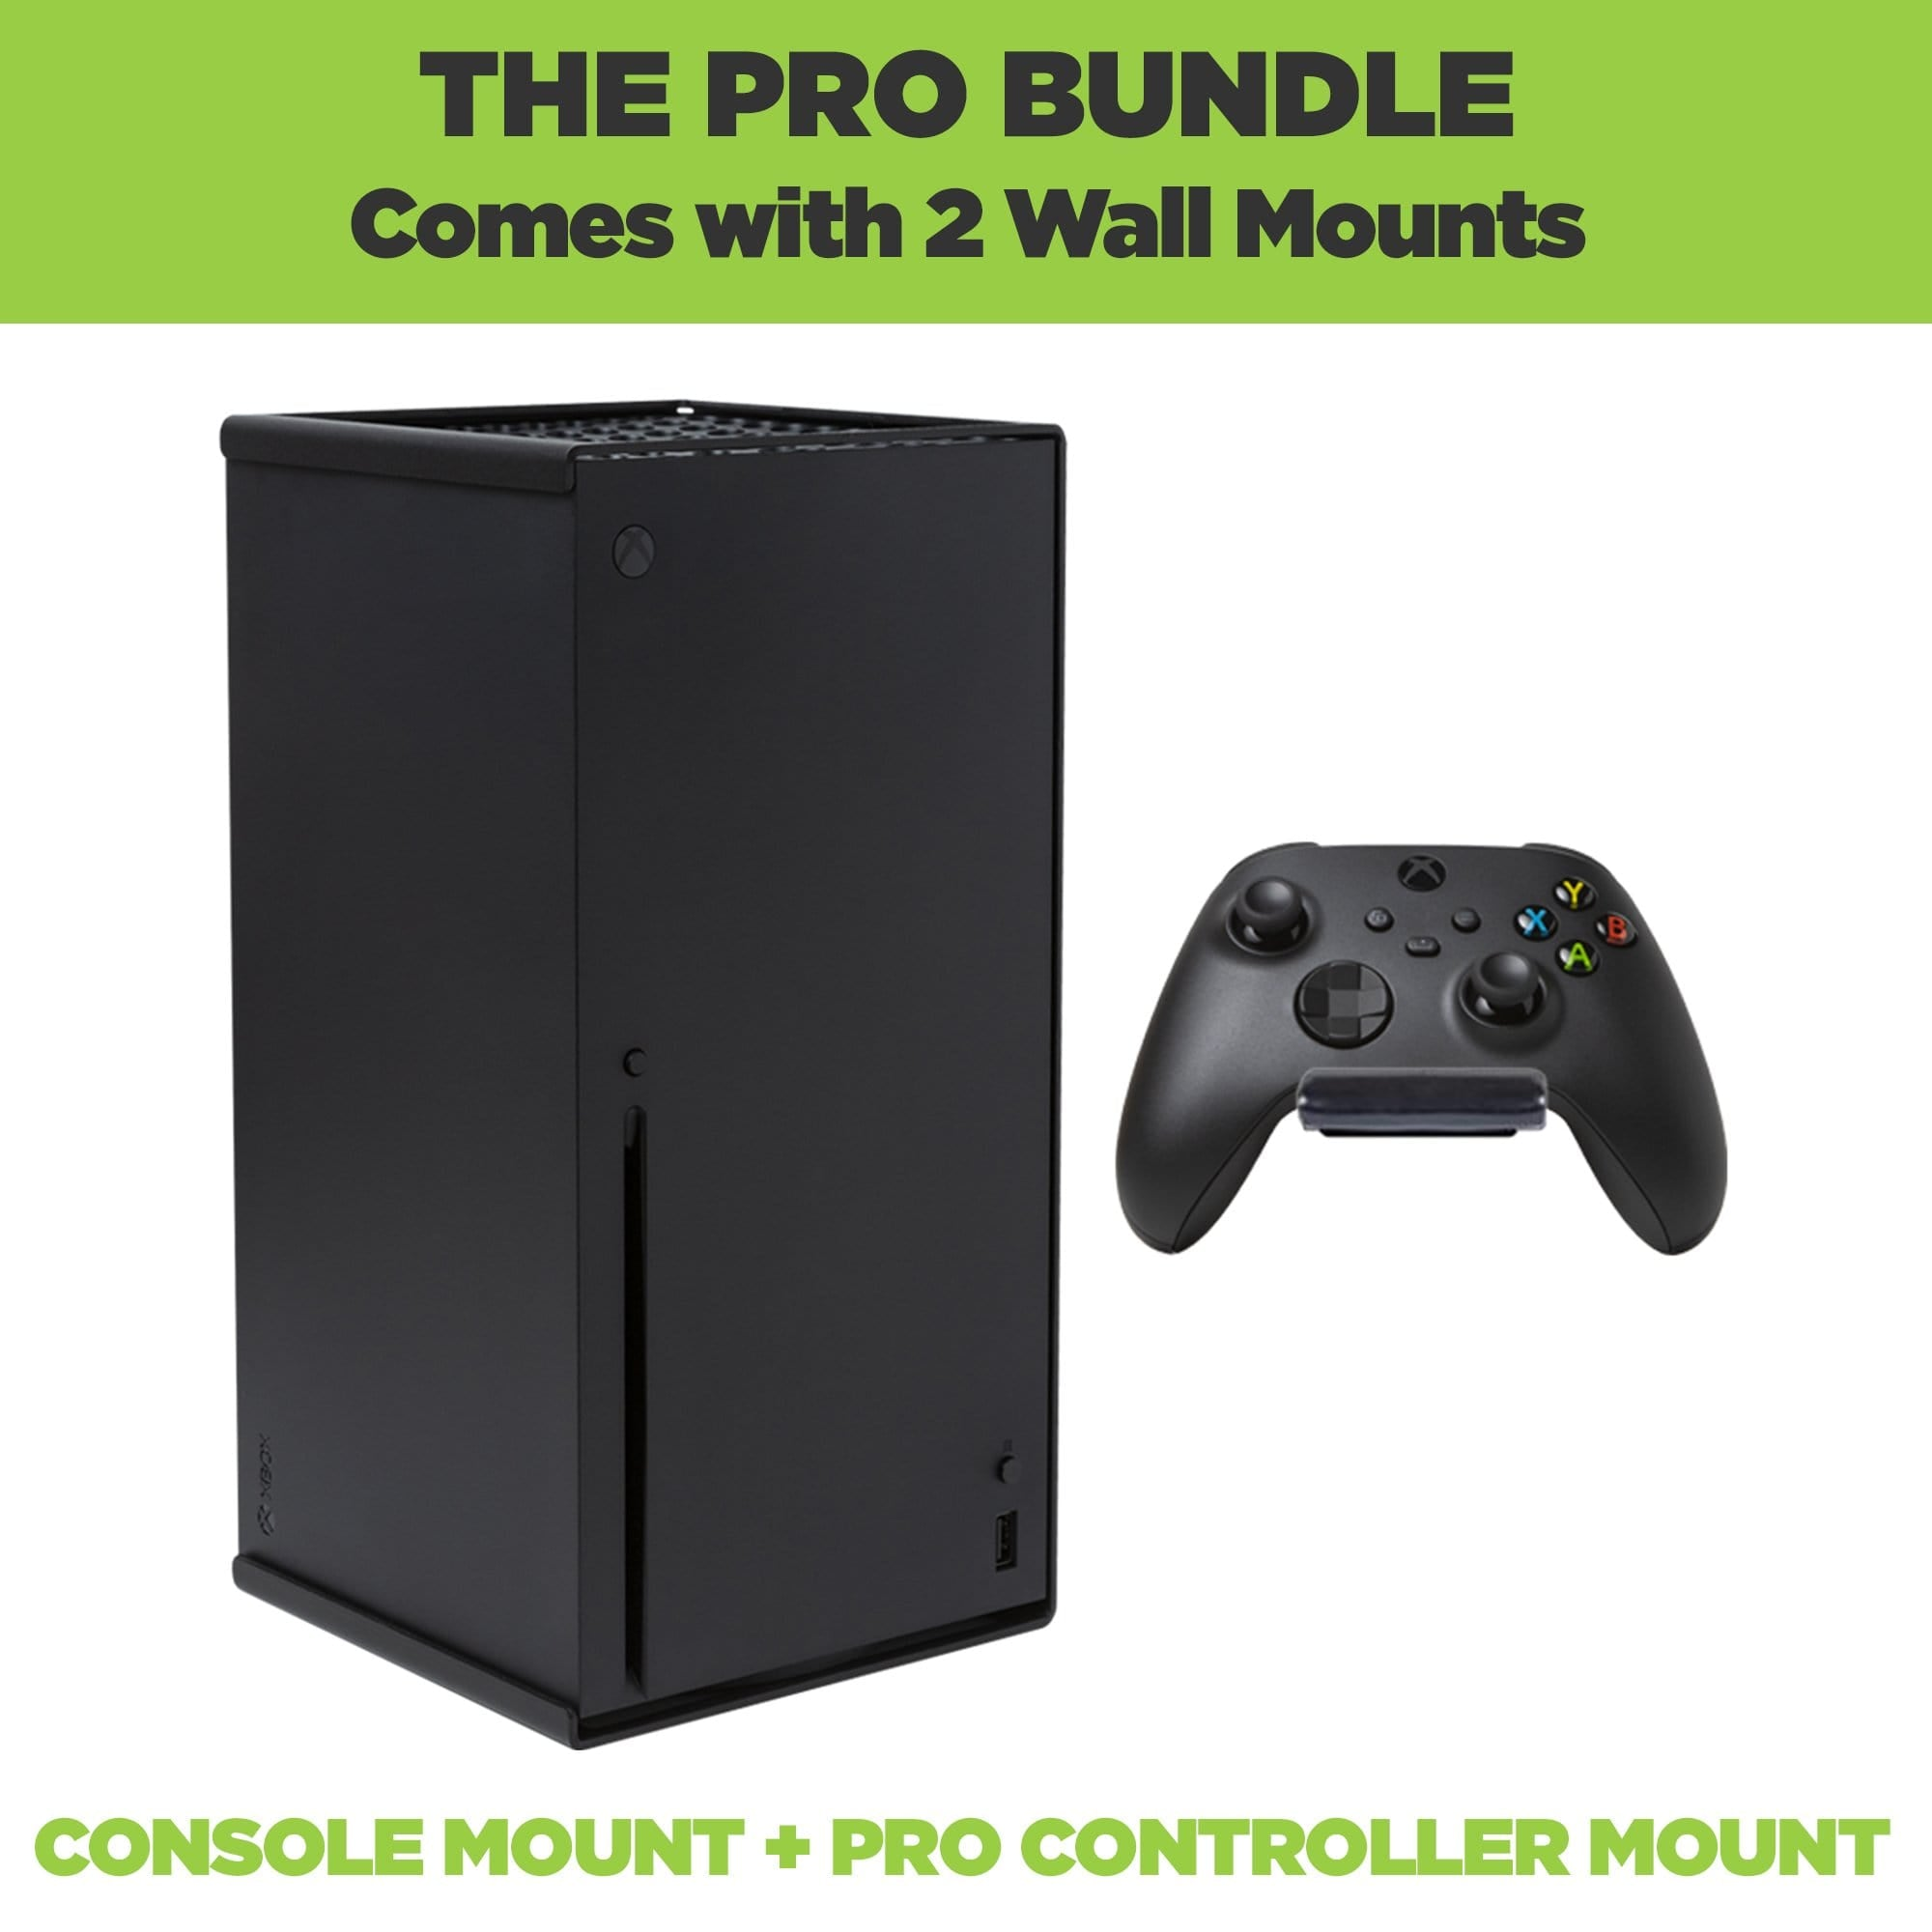 HIDEit Xbox Series X Pro Bundle comes with one mount for the Xbox Series X and one wall mount for the new Xbox controller